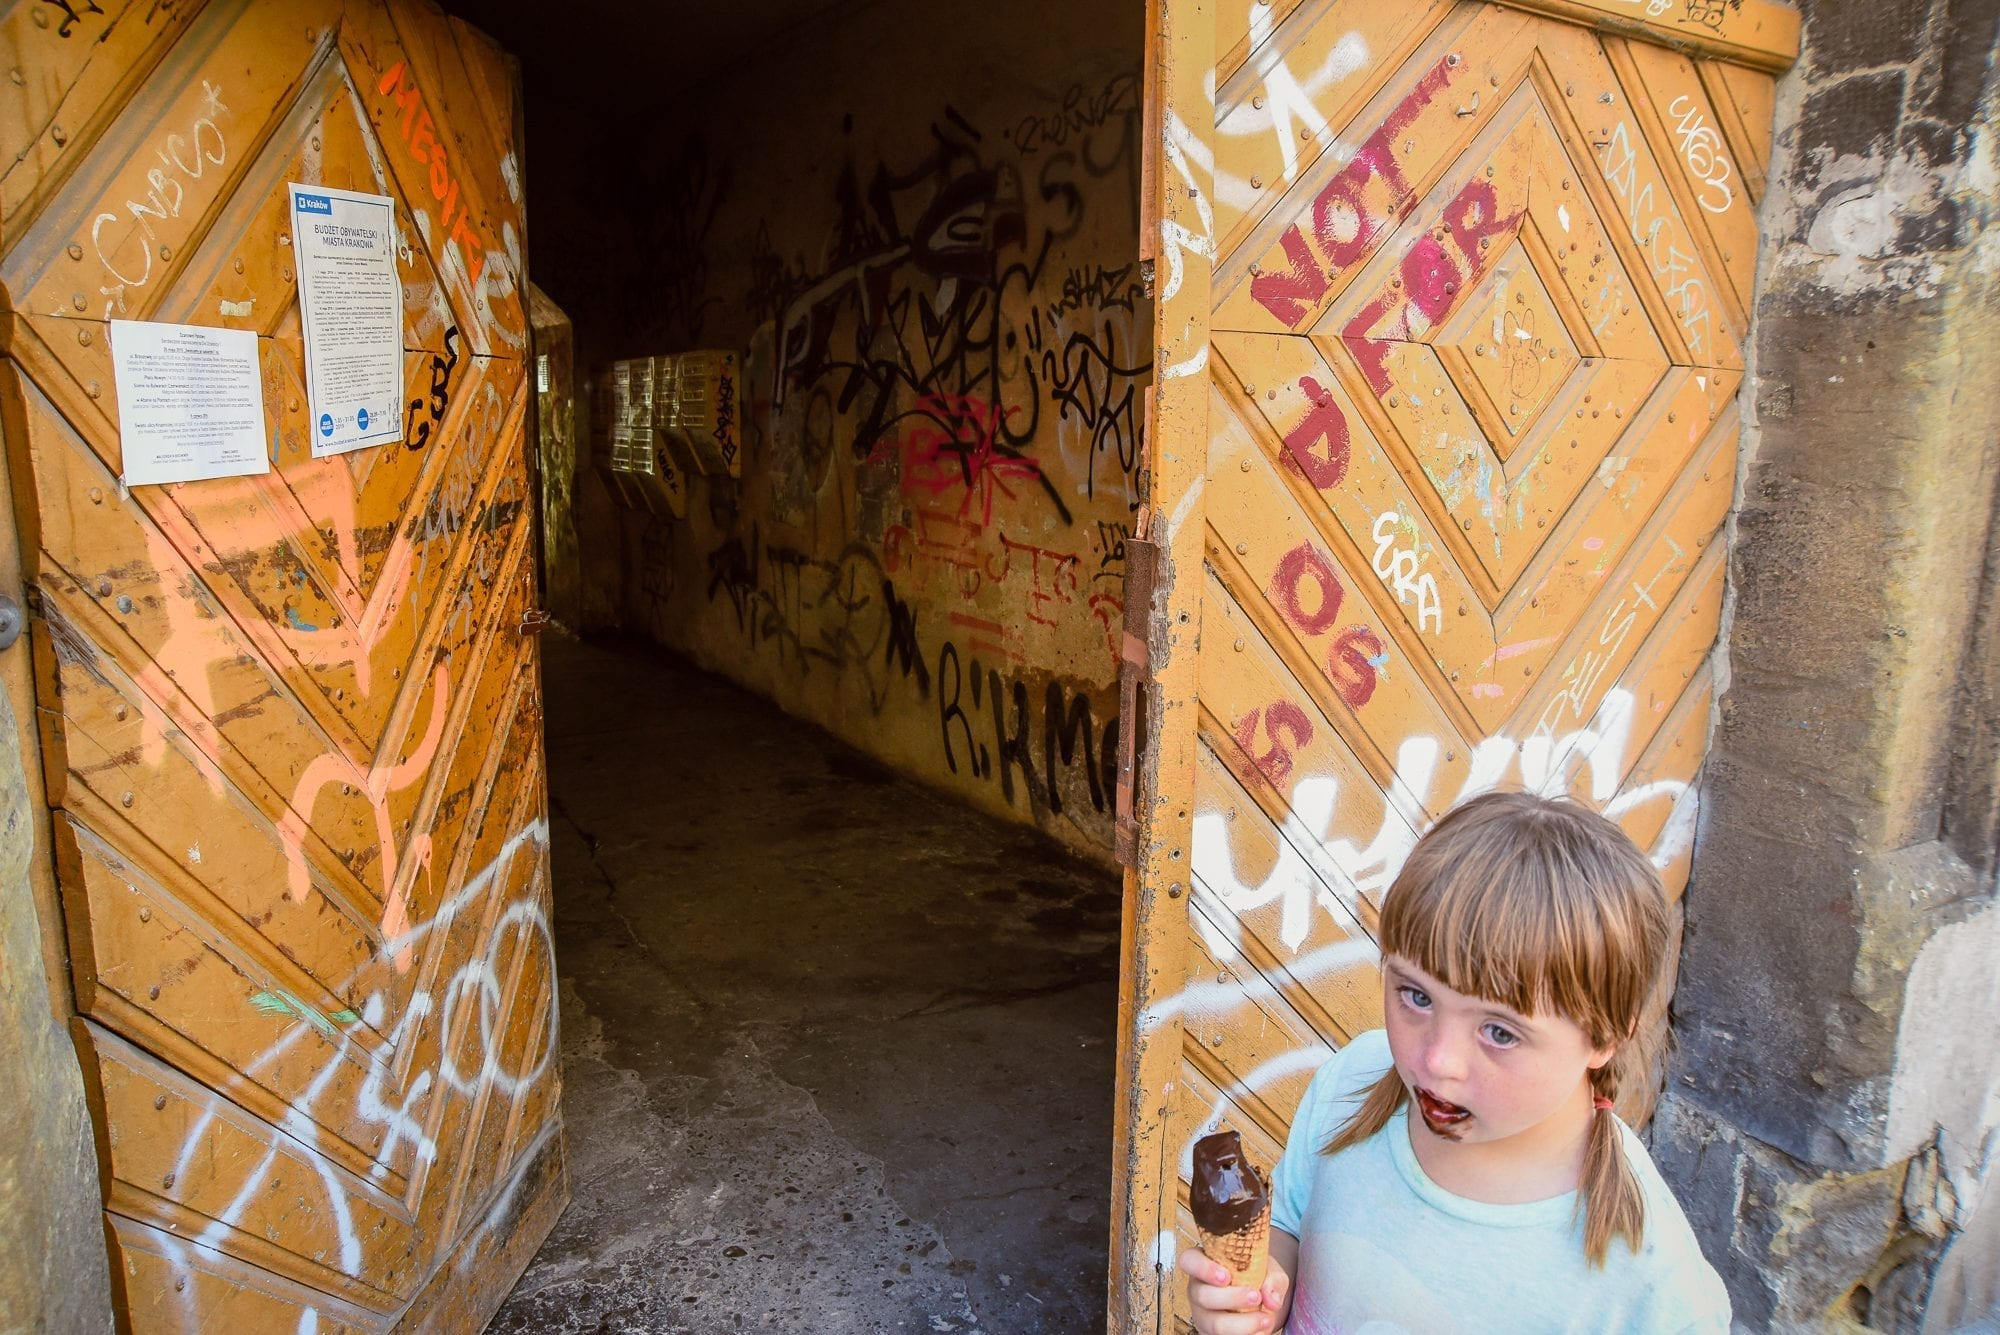 child with icecream on her face in front of open door with graffiti